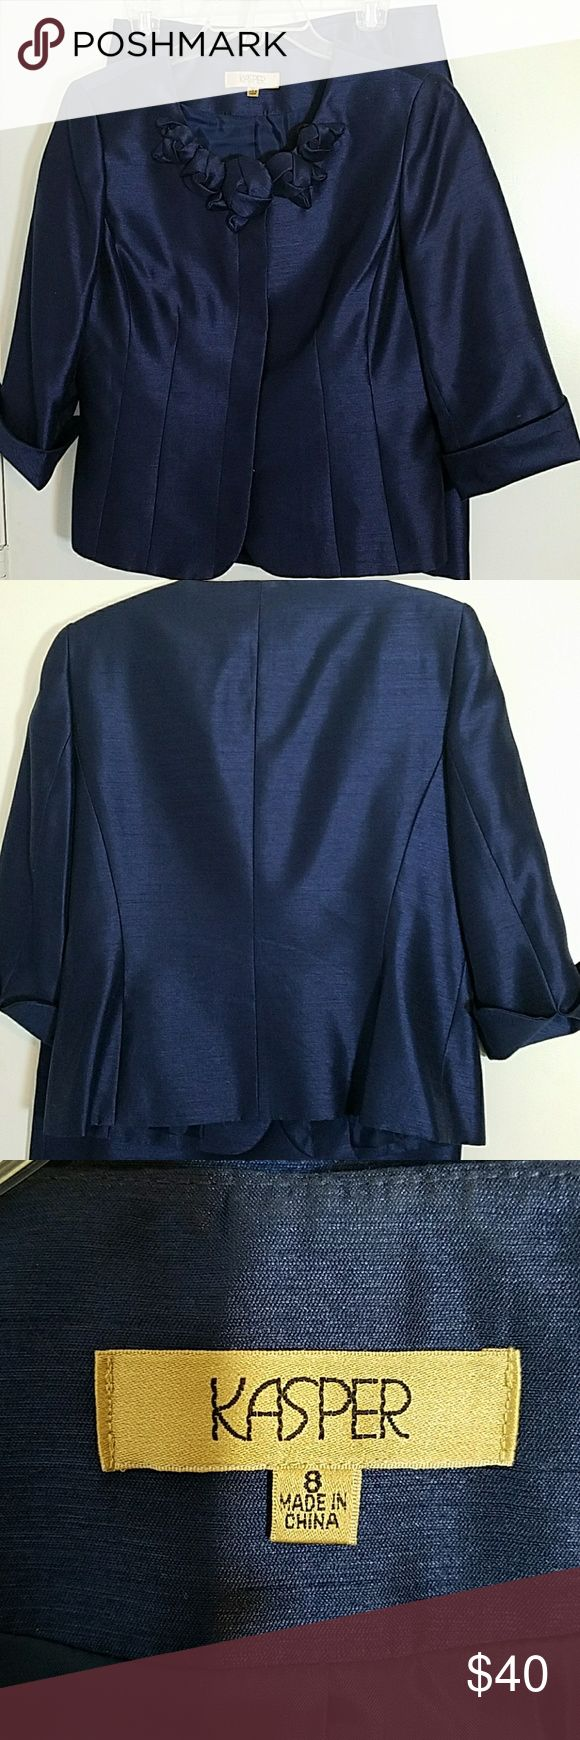 Mother of the bride skirt suit. Gorgeous dark shiny navy Kasper skirt set. Size 8. Worn once to a wedding.  Pictures don't do it justice. Kasper Dresses